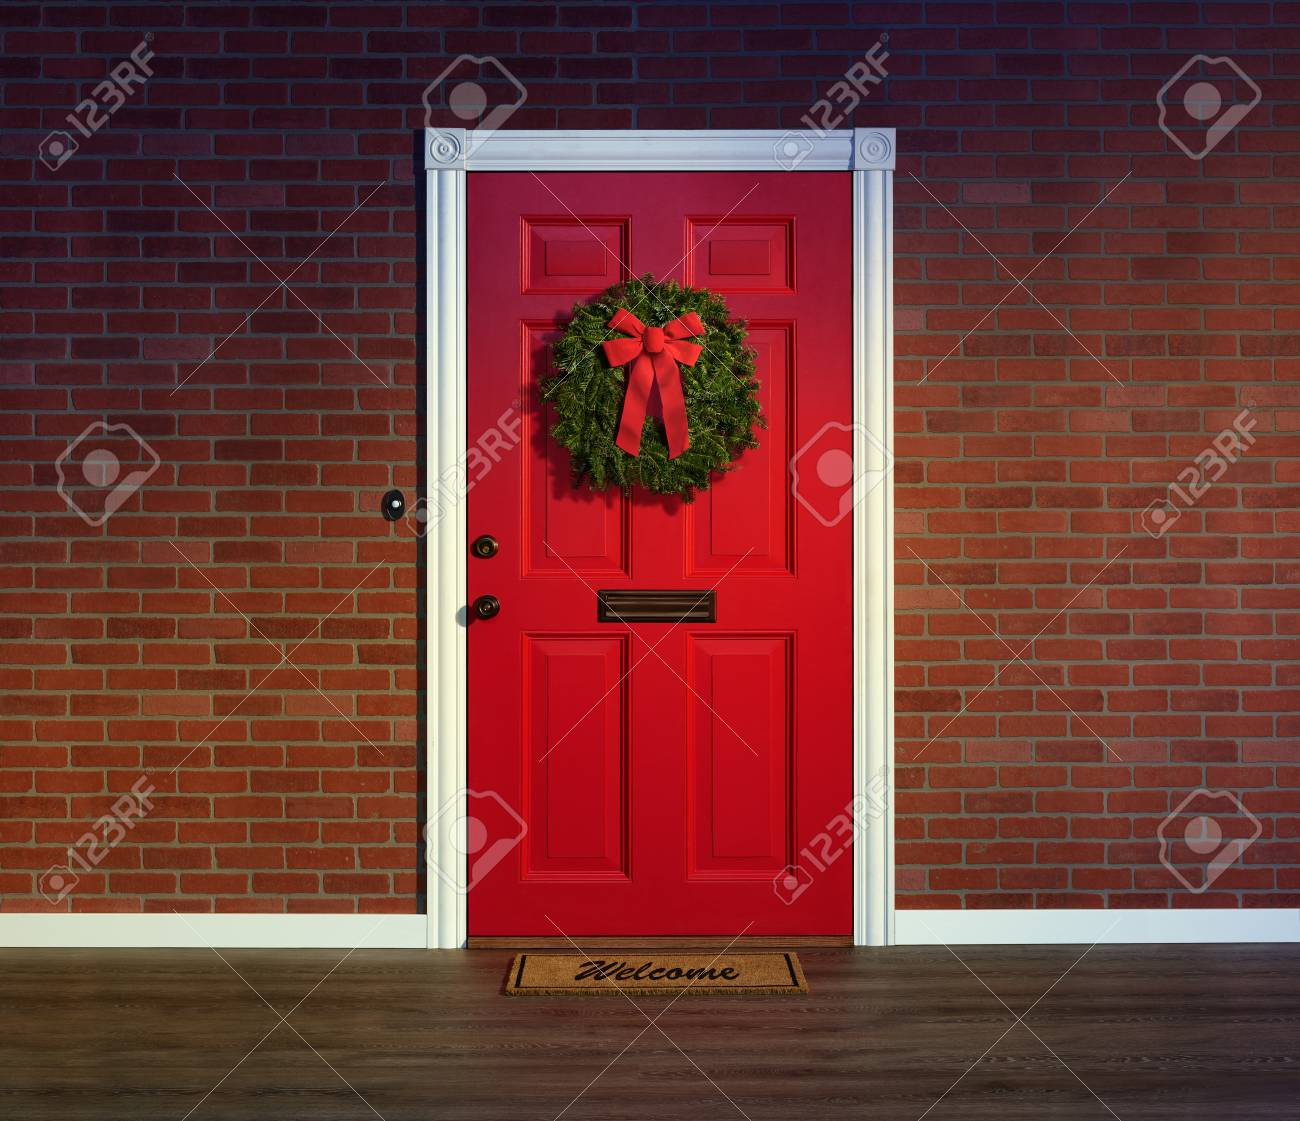 Christmas Wreath On Bright Red Front Door With Welcome Mat Stock